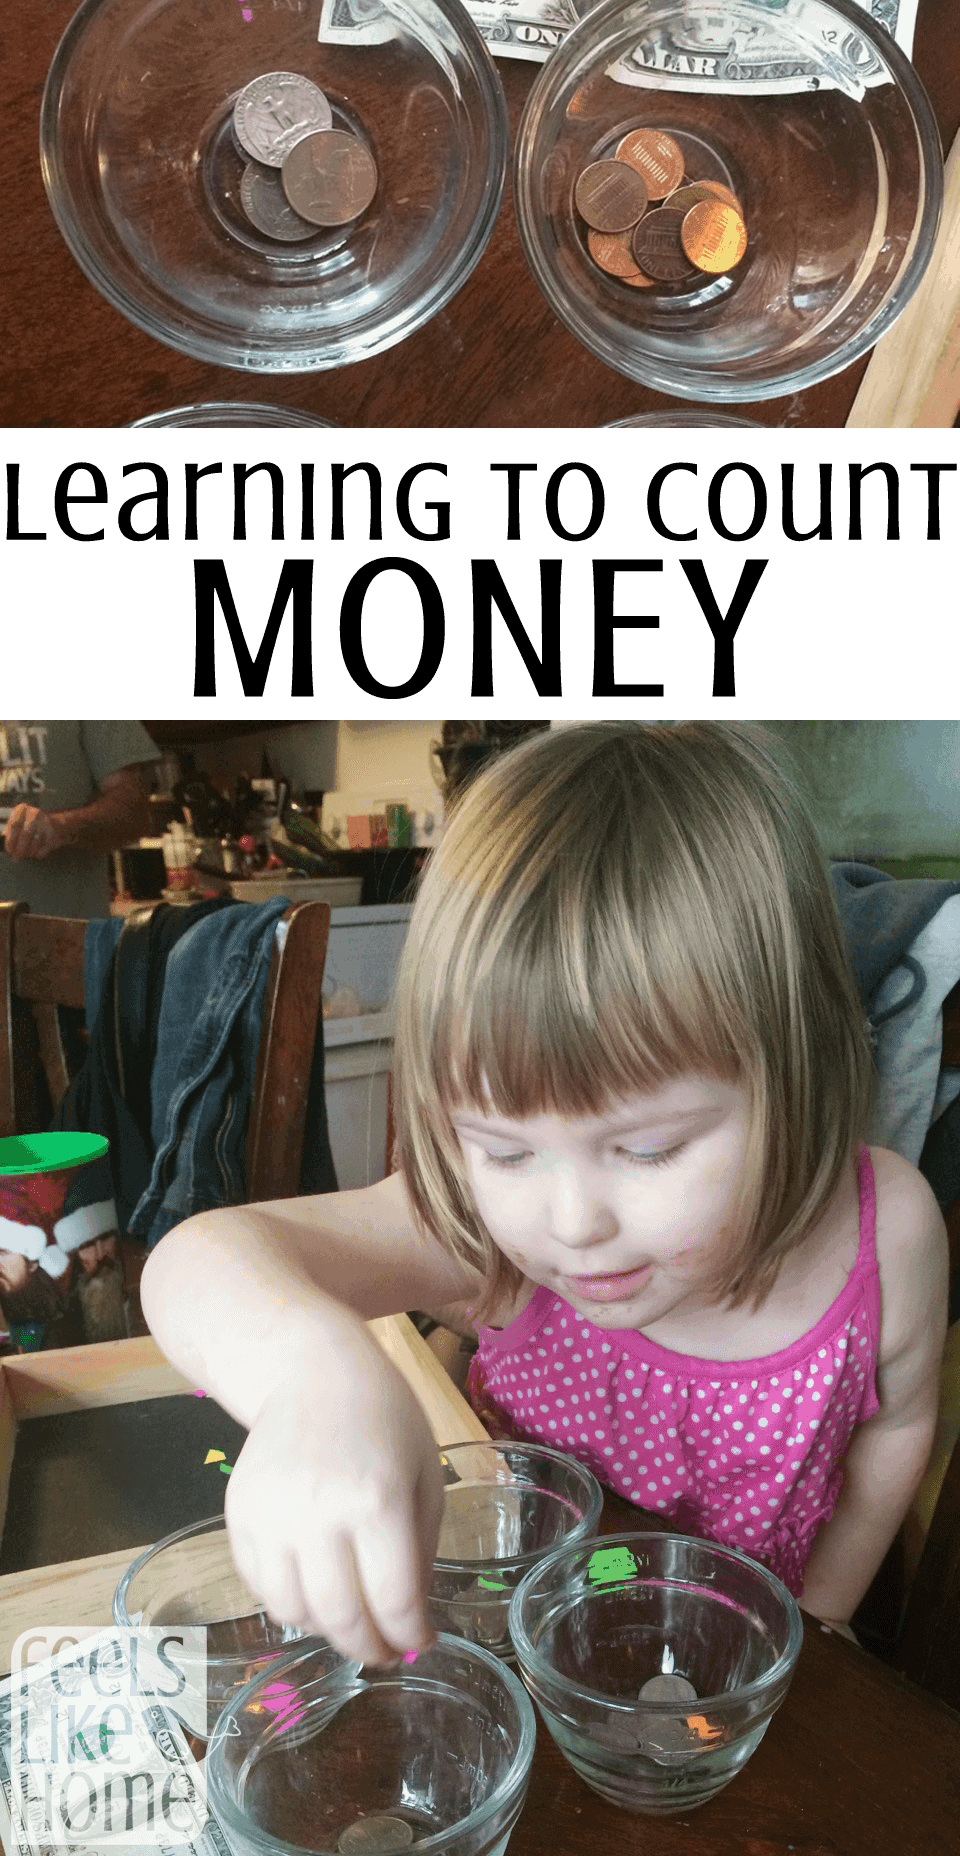 A little girl sitting at a table counting money